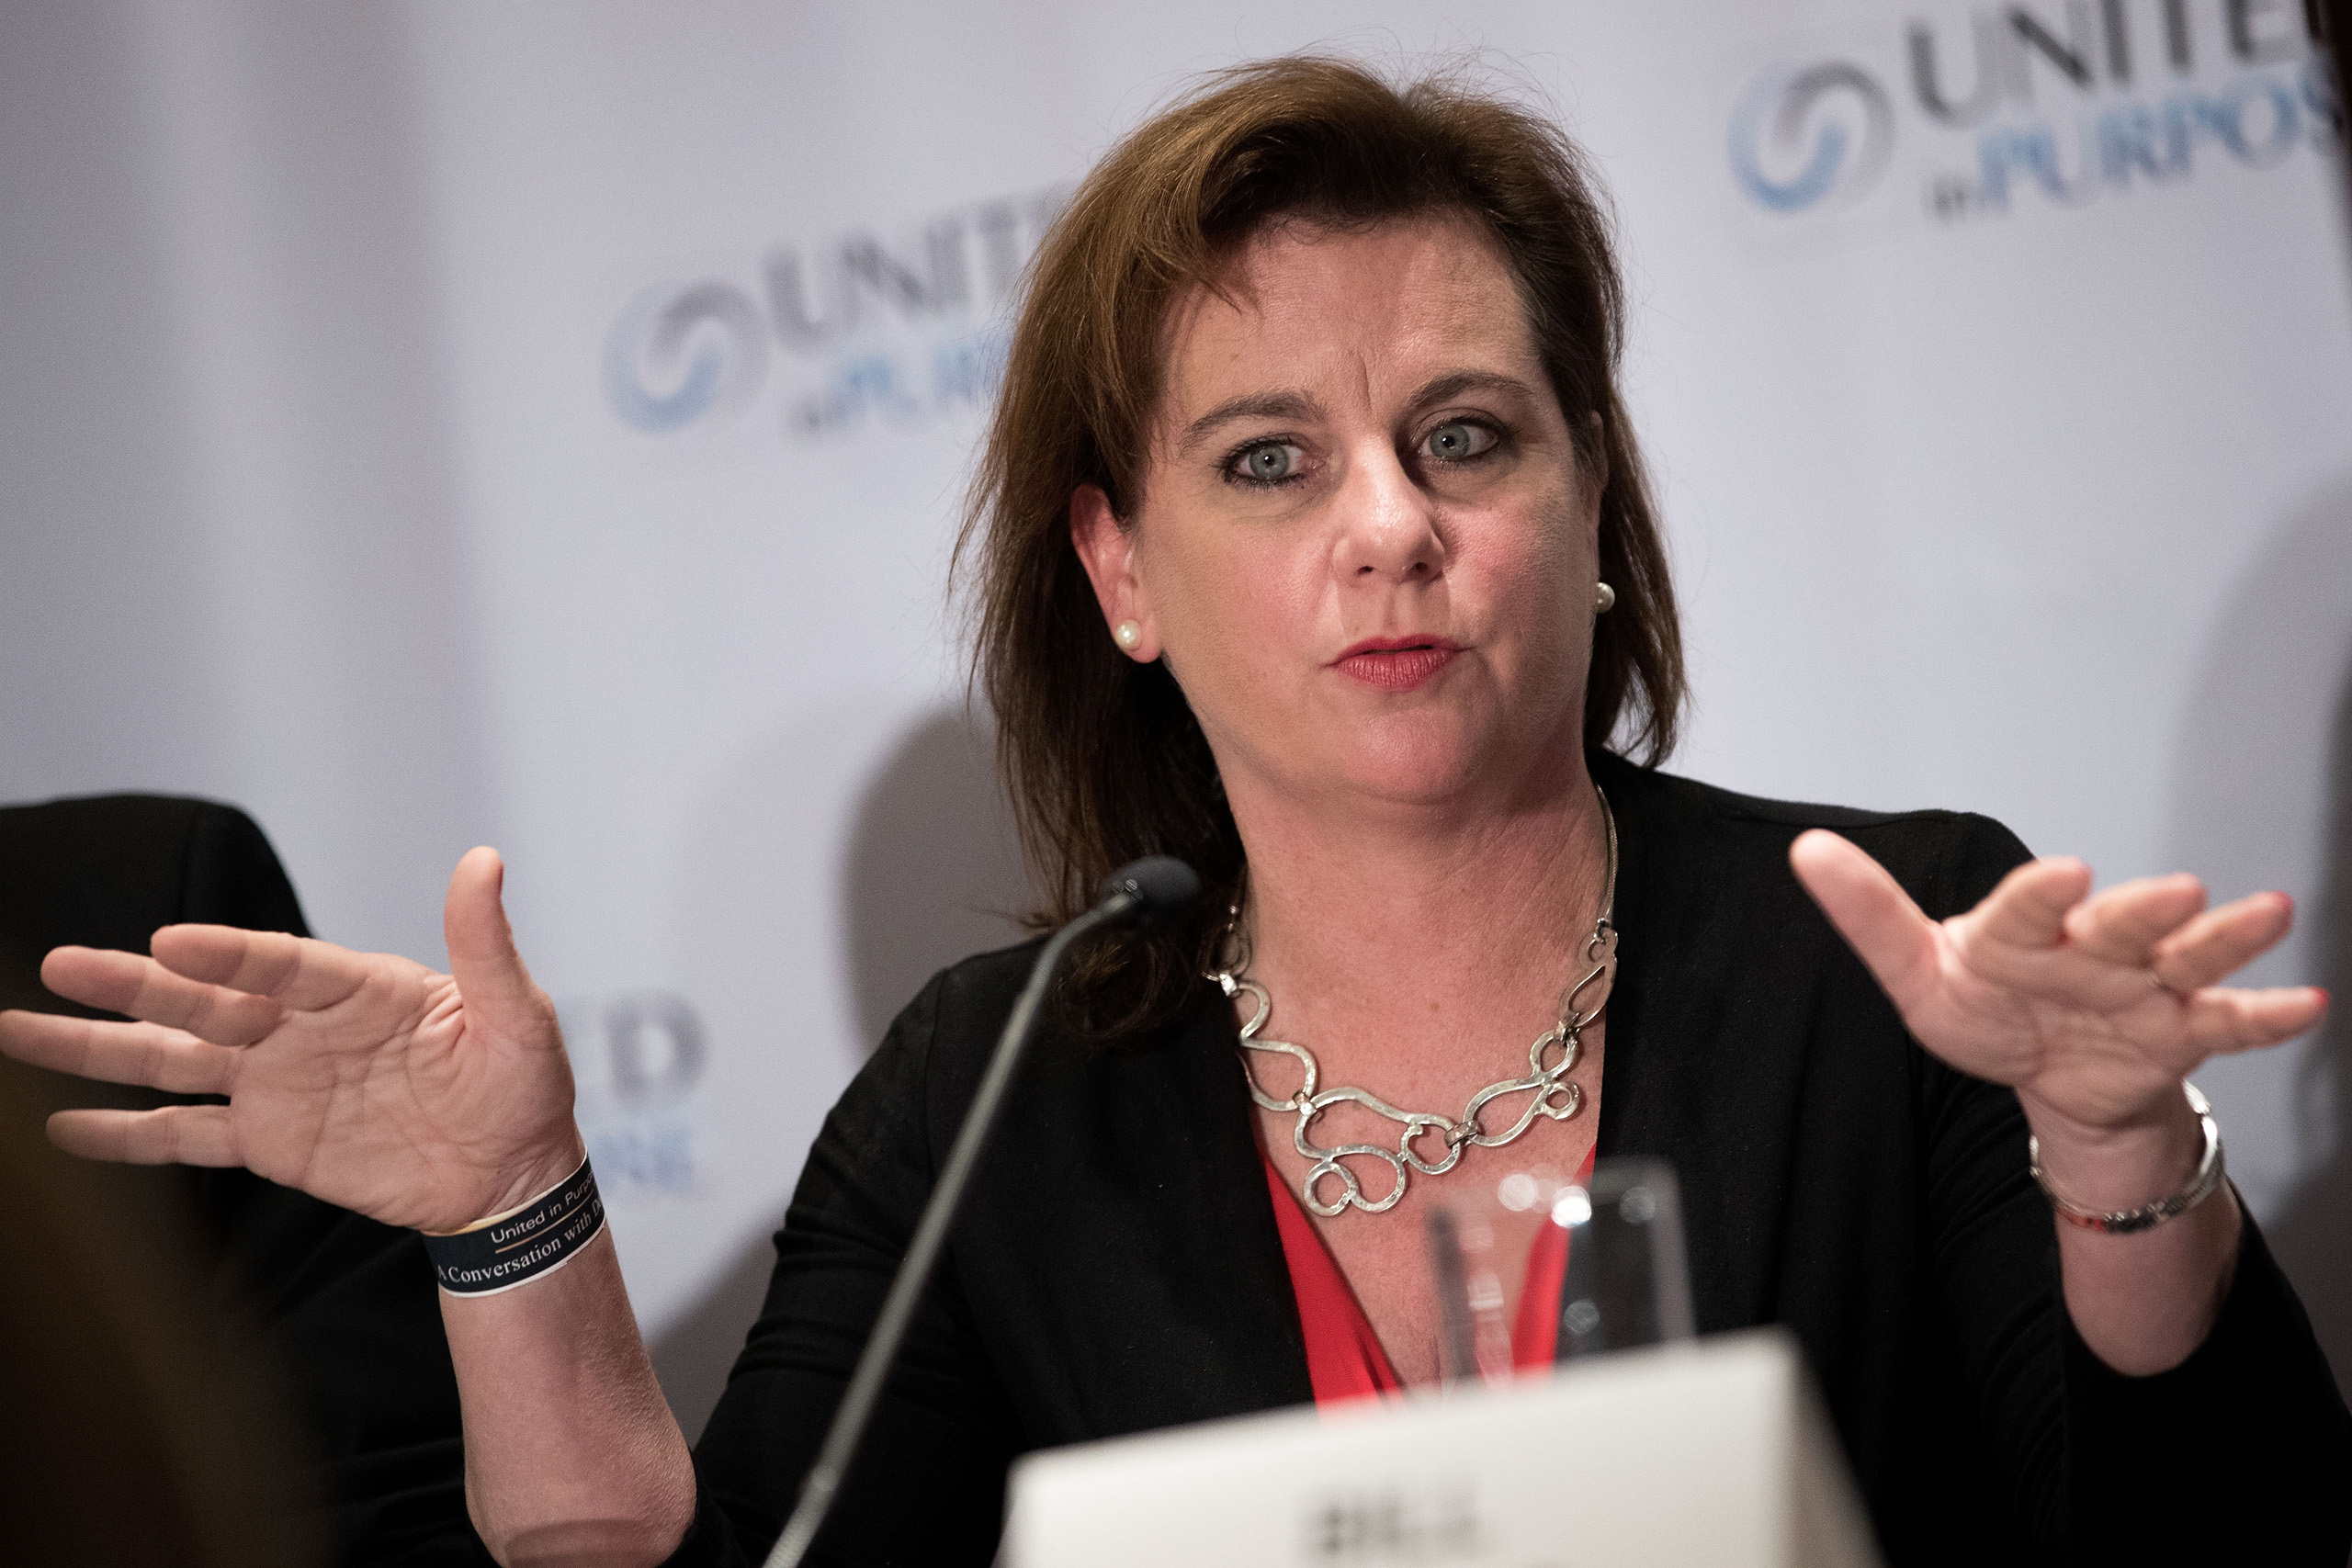 Marjorie Dannenfelser, president of Susan B. Anthony List, speaks during a press conference following a meeting with Republican presidential candidate Donald Trump at the Marriott Marquis Hotel in New York City on June 21, 2016.